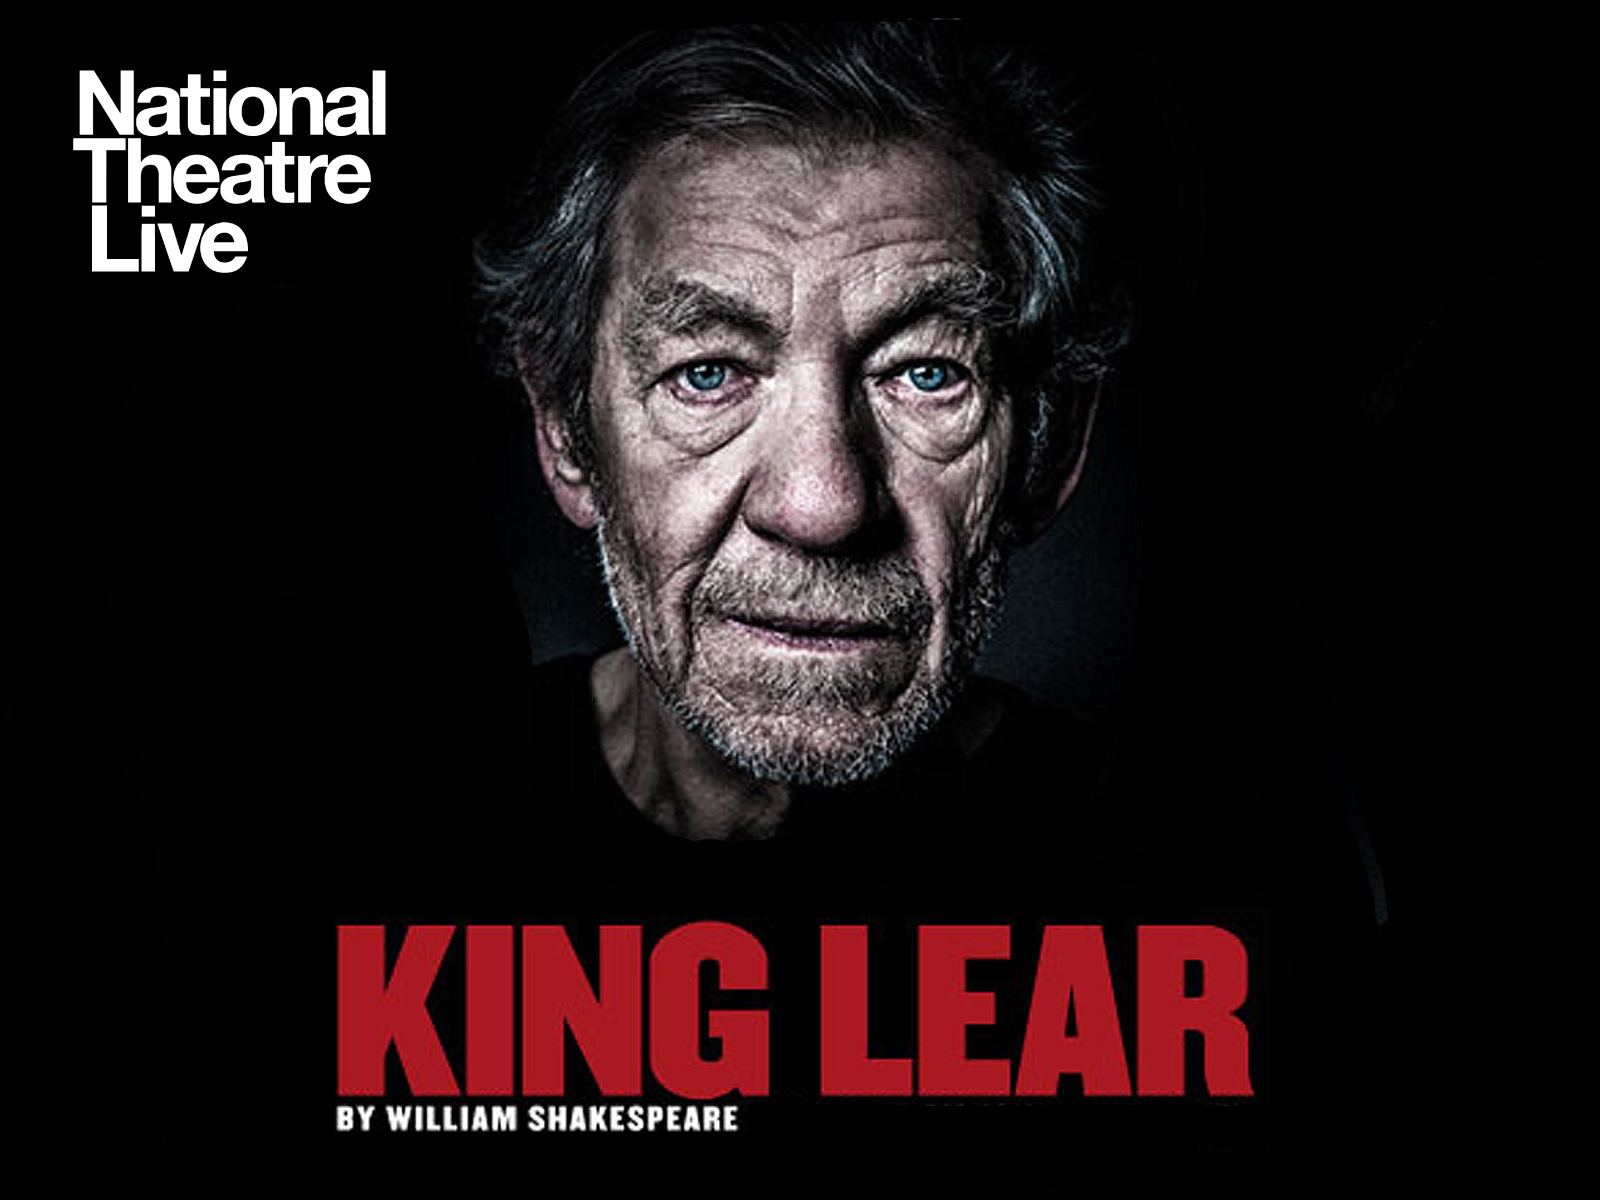 Ian McKellen delivers an iconic performance in the title role of Shakespeare's great tragedy...